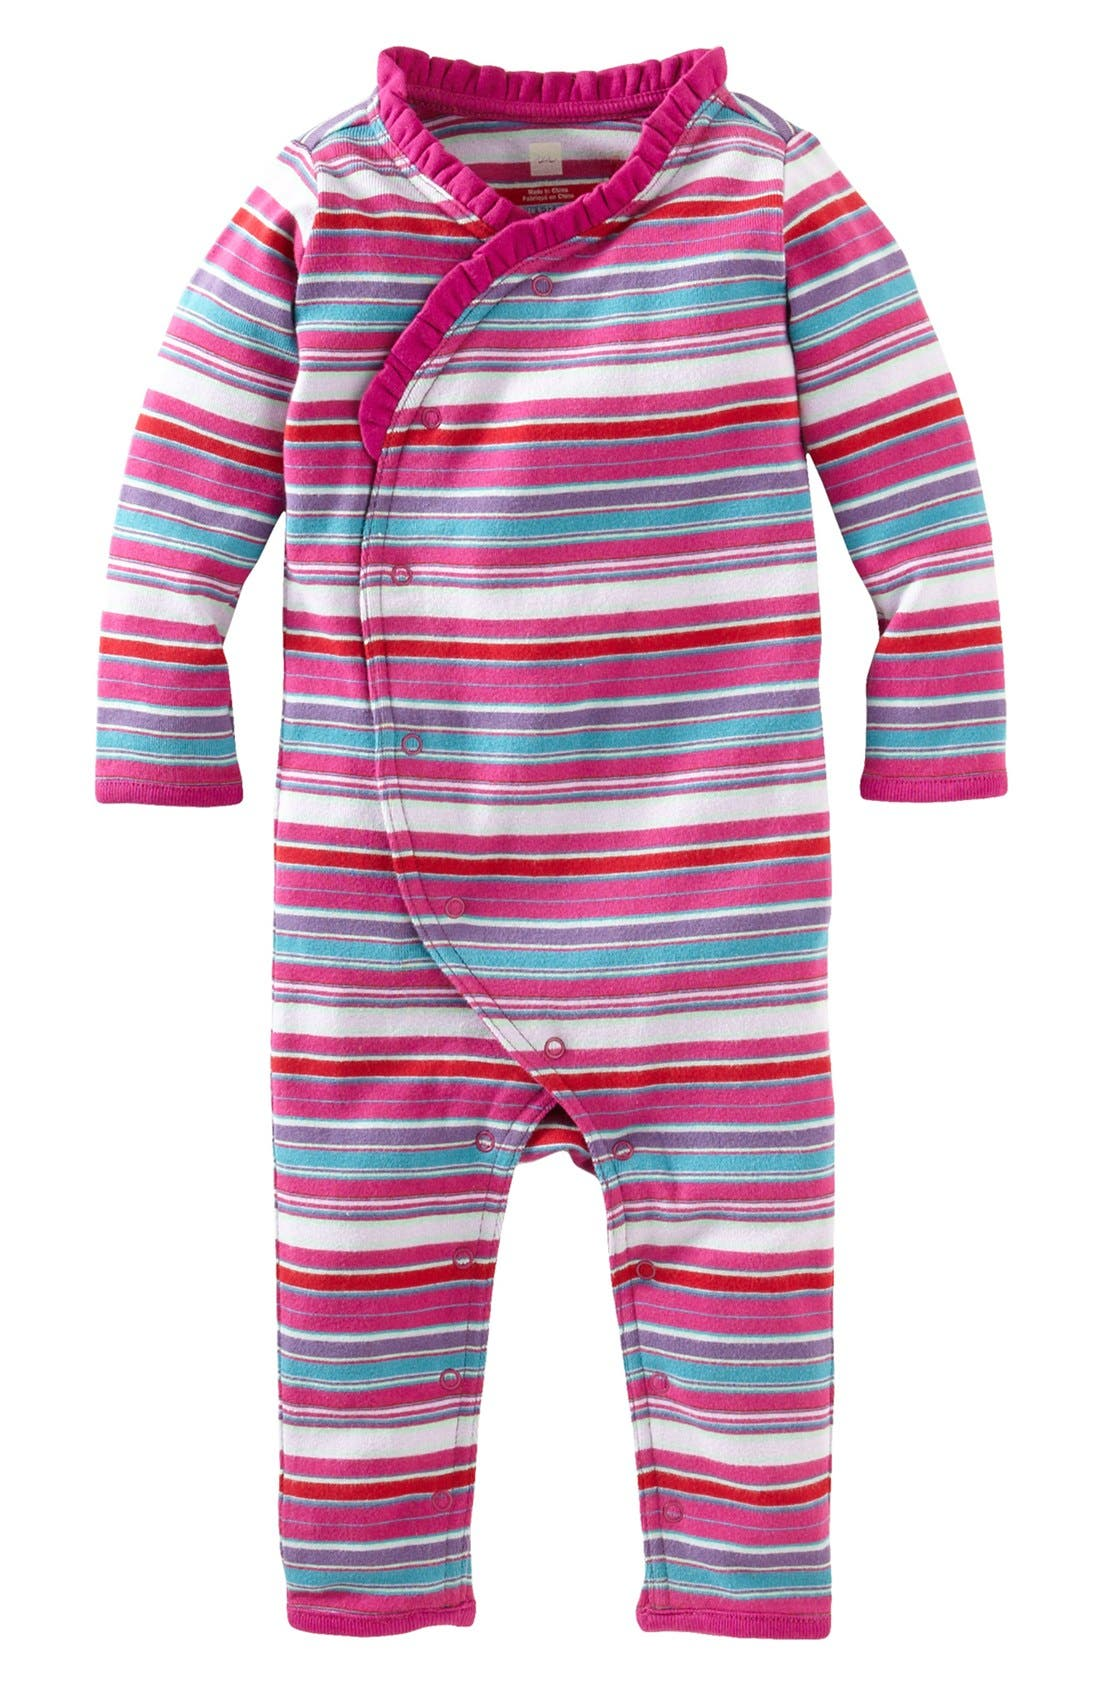 Main Image - Tea Collection 'Lunar Stripe' Romper (Baby Girls)